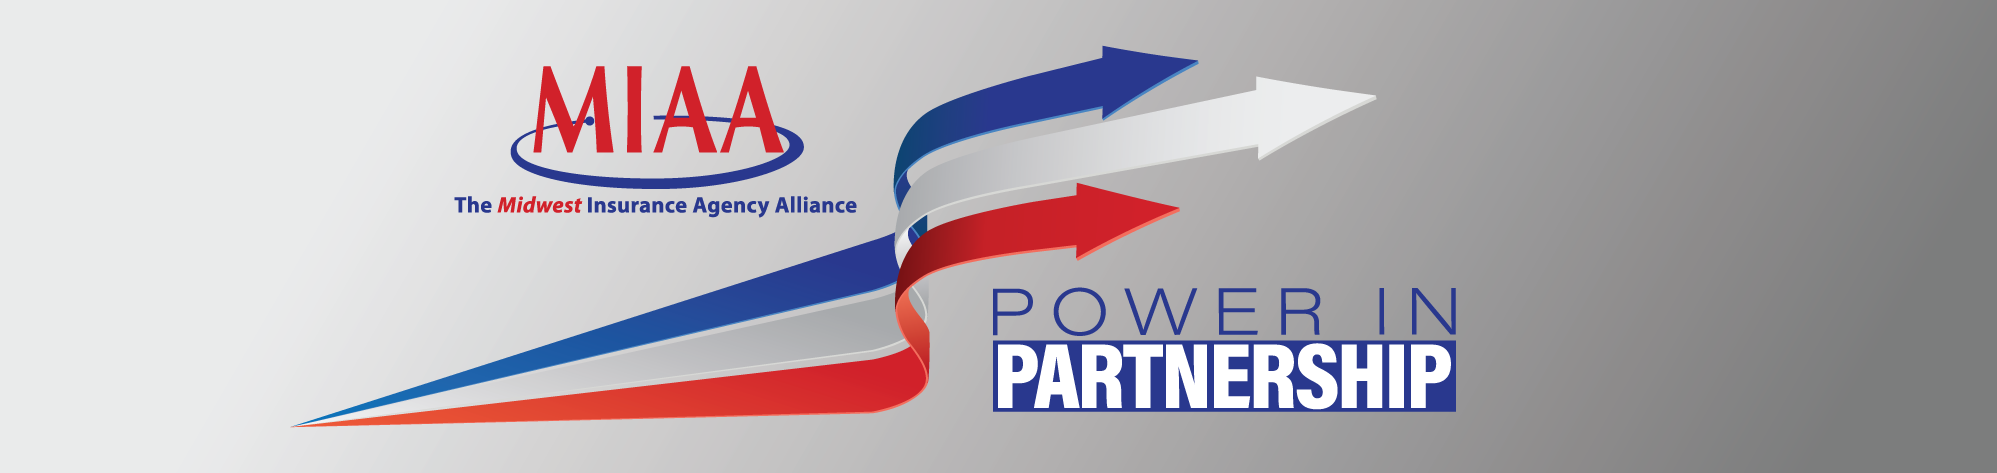 MIAA - Power in Partnership